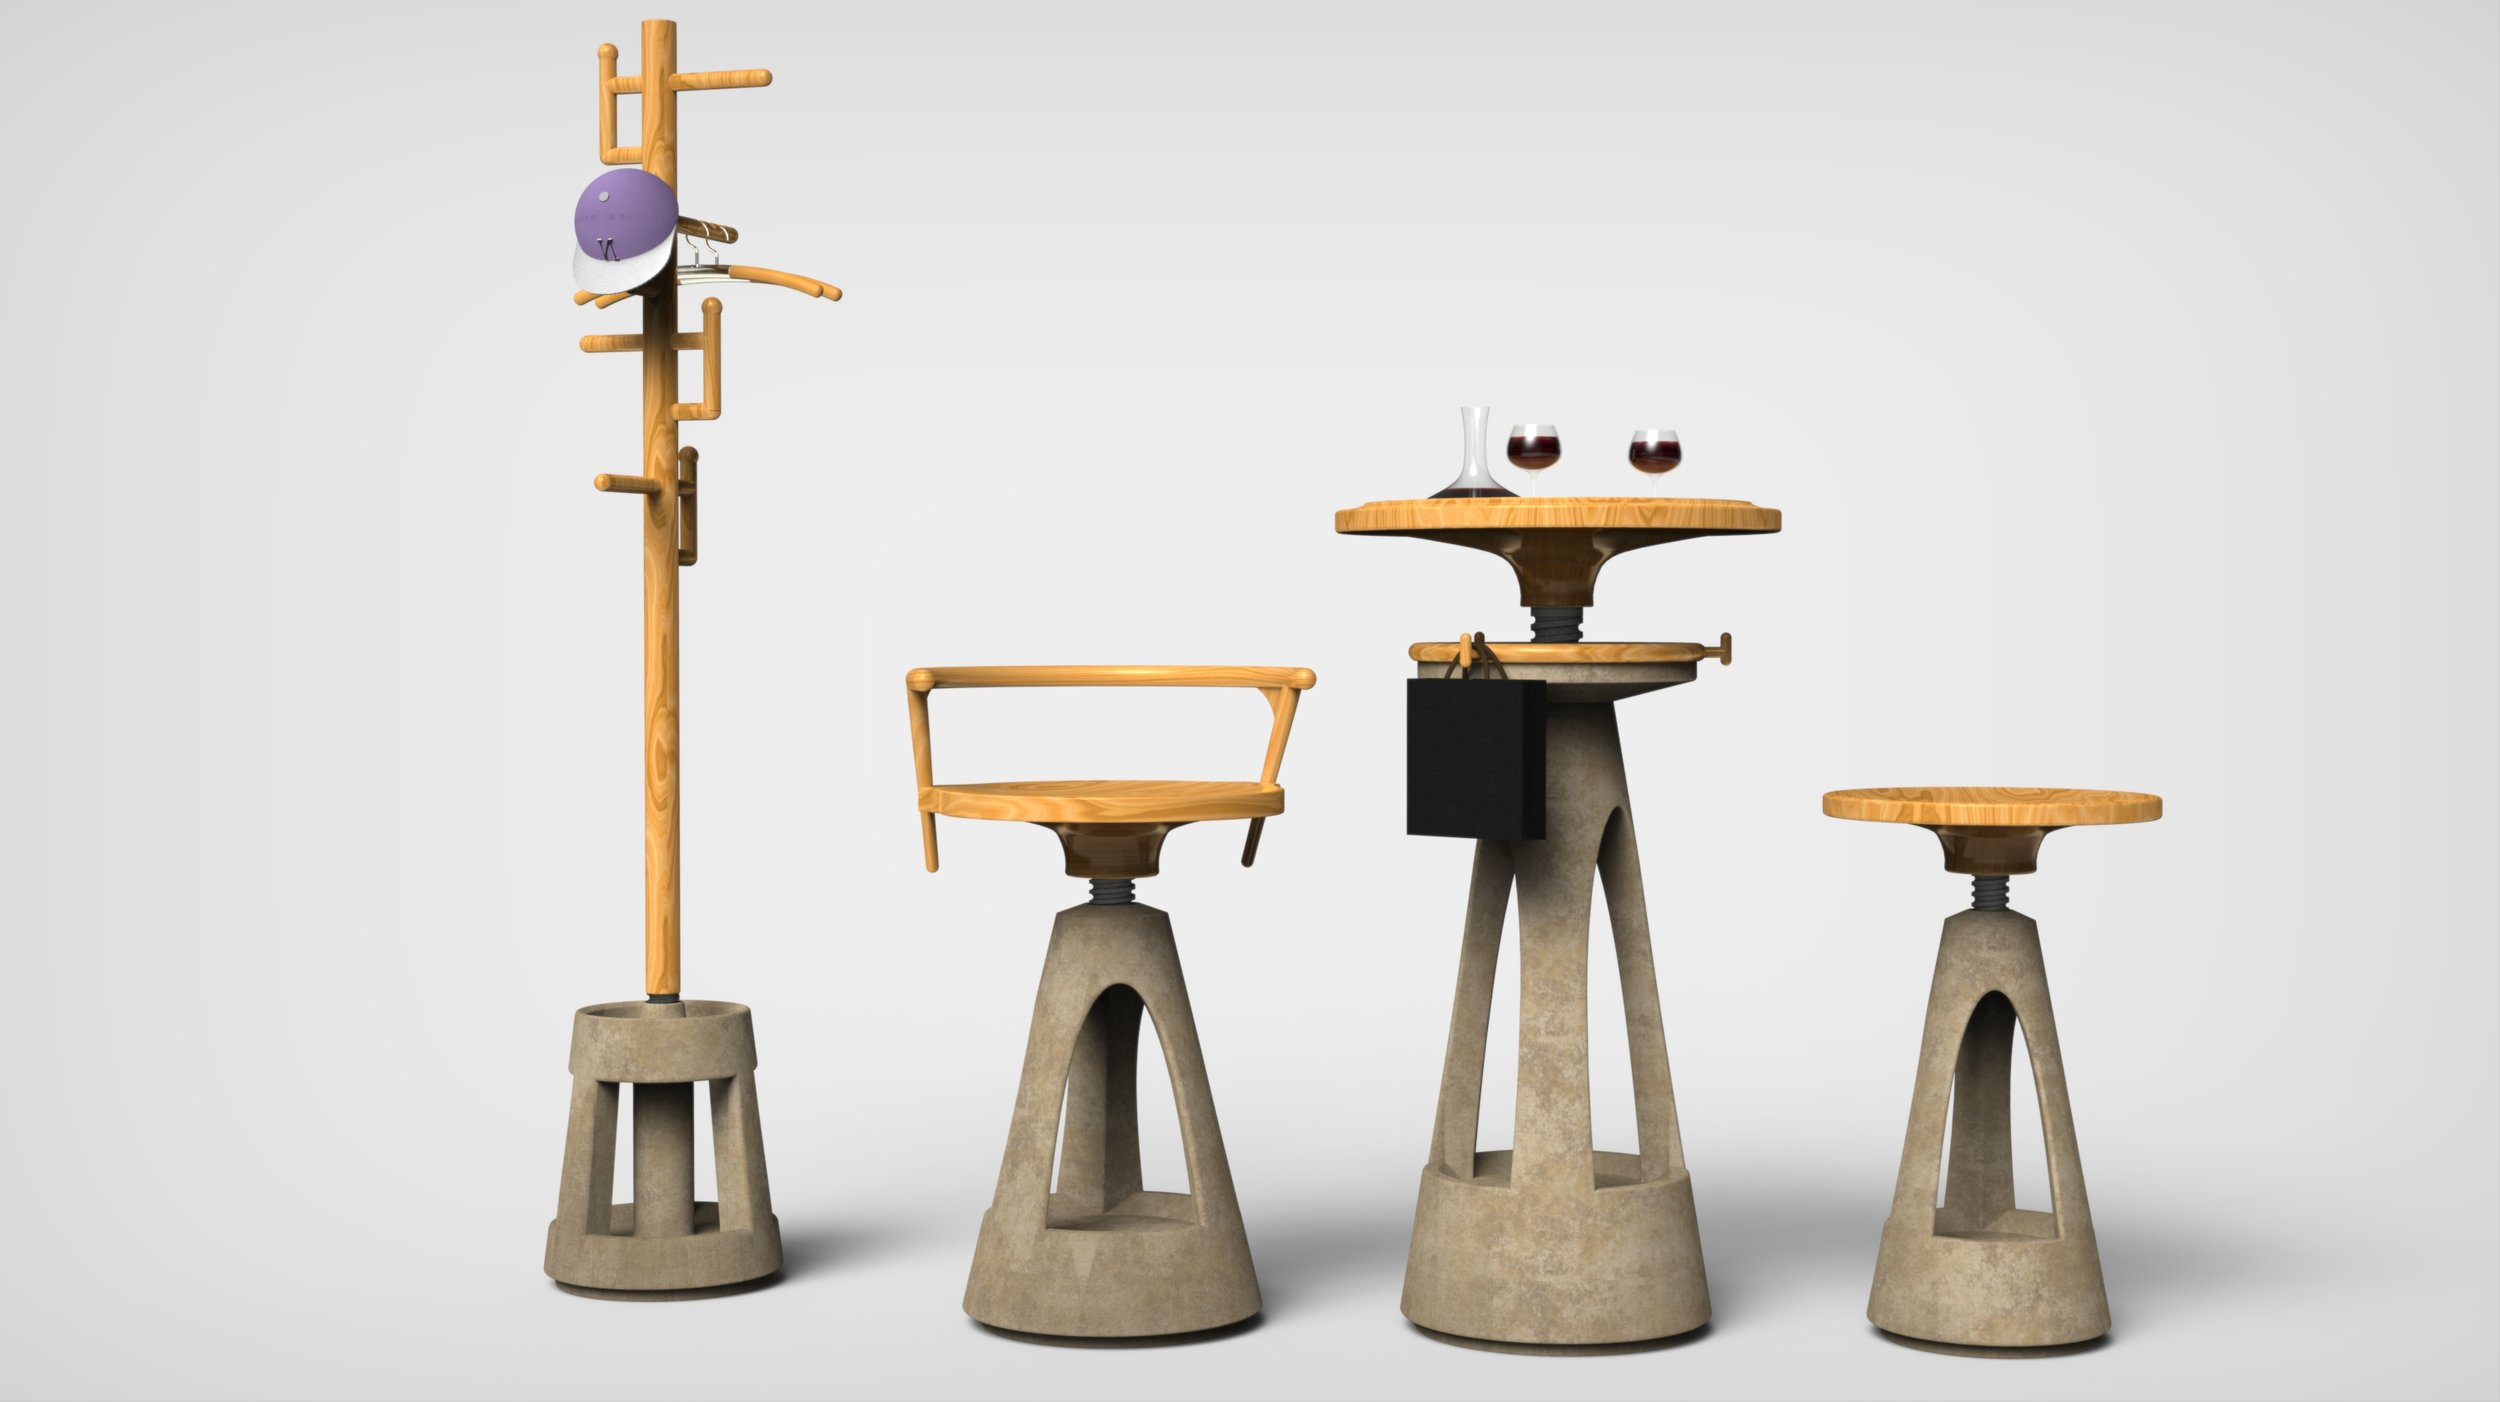 The Revolve series concrete furniture have a cloth rack with umbrella holder, two bar seats, a bar table, a ice bucket holder and a wine storage shelf.